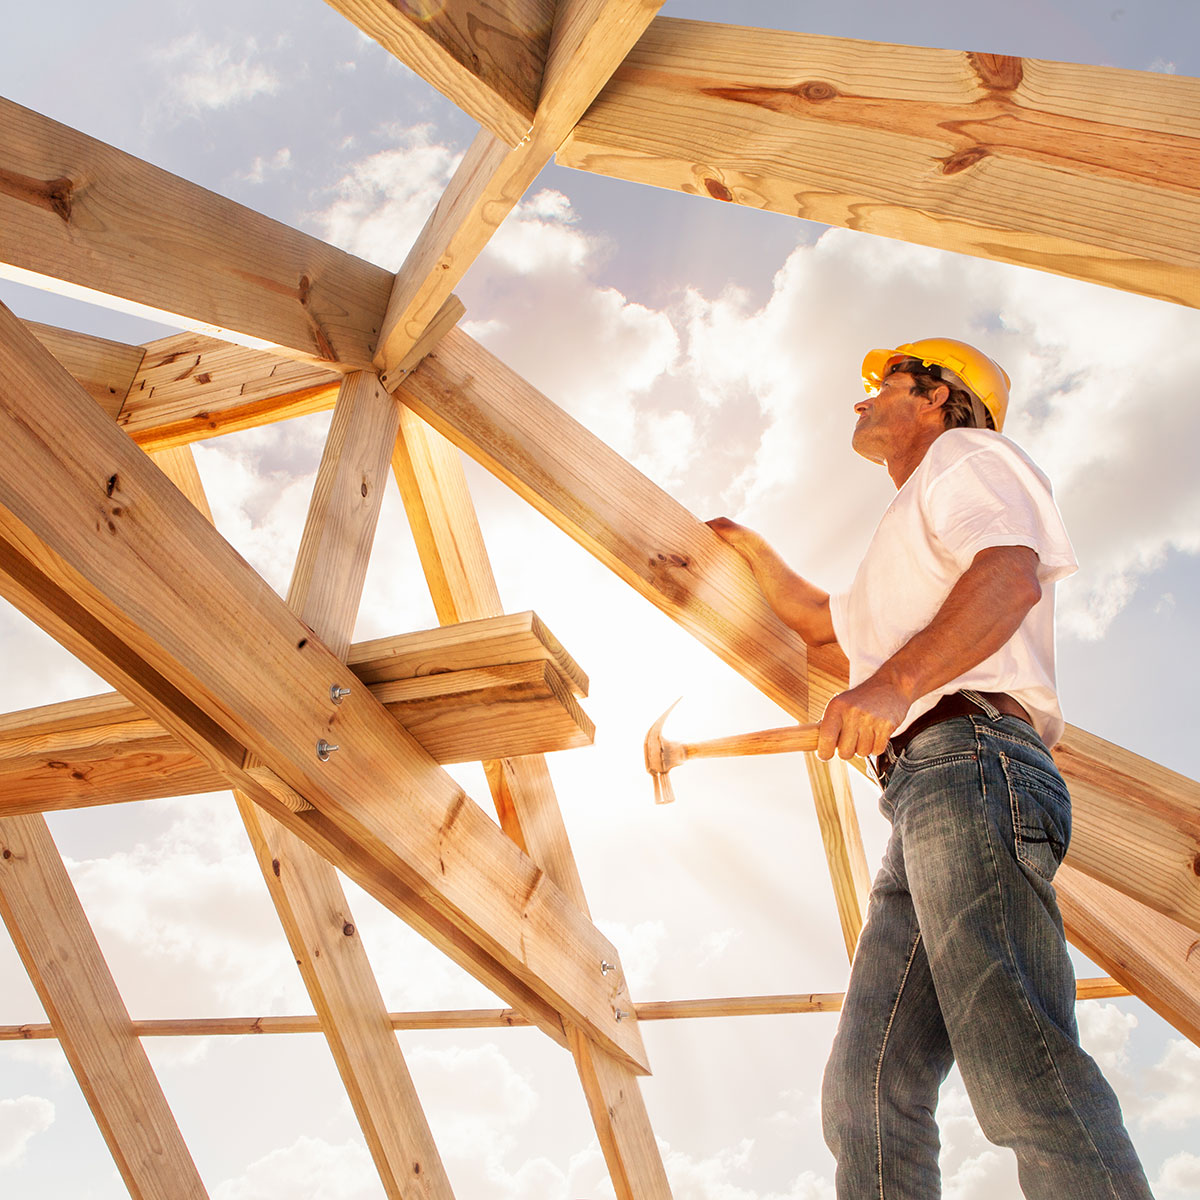 man building house framing roof sunshine